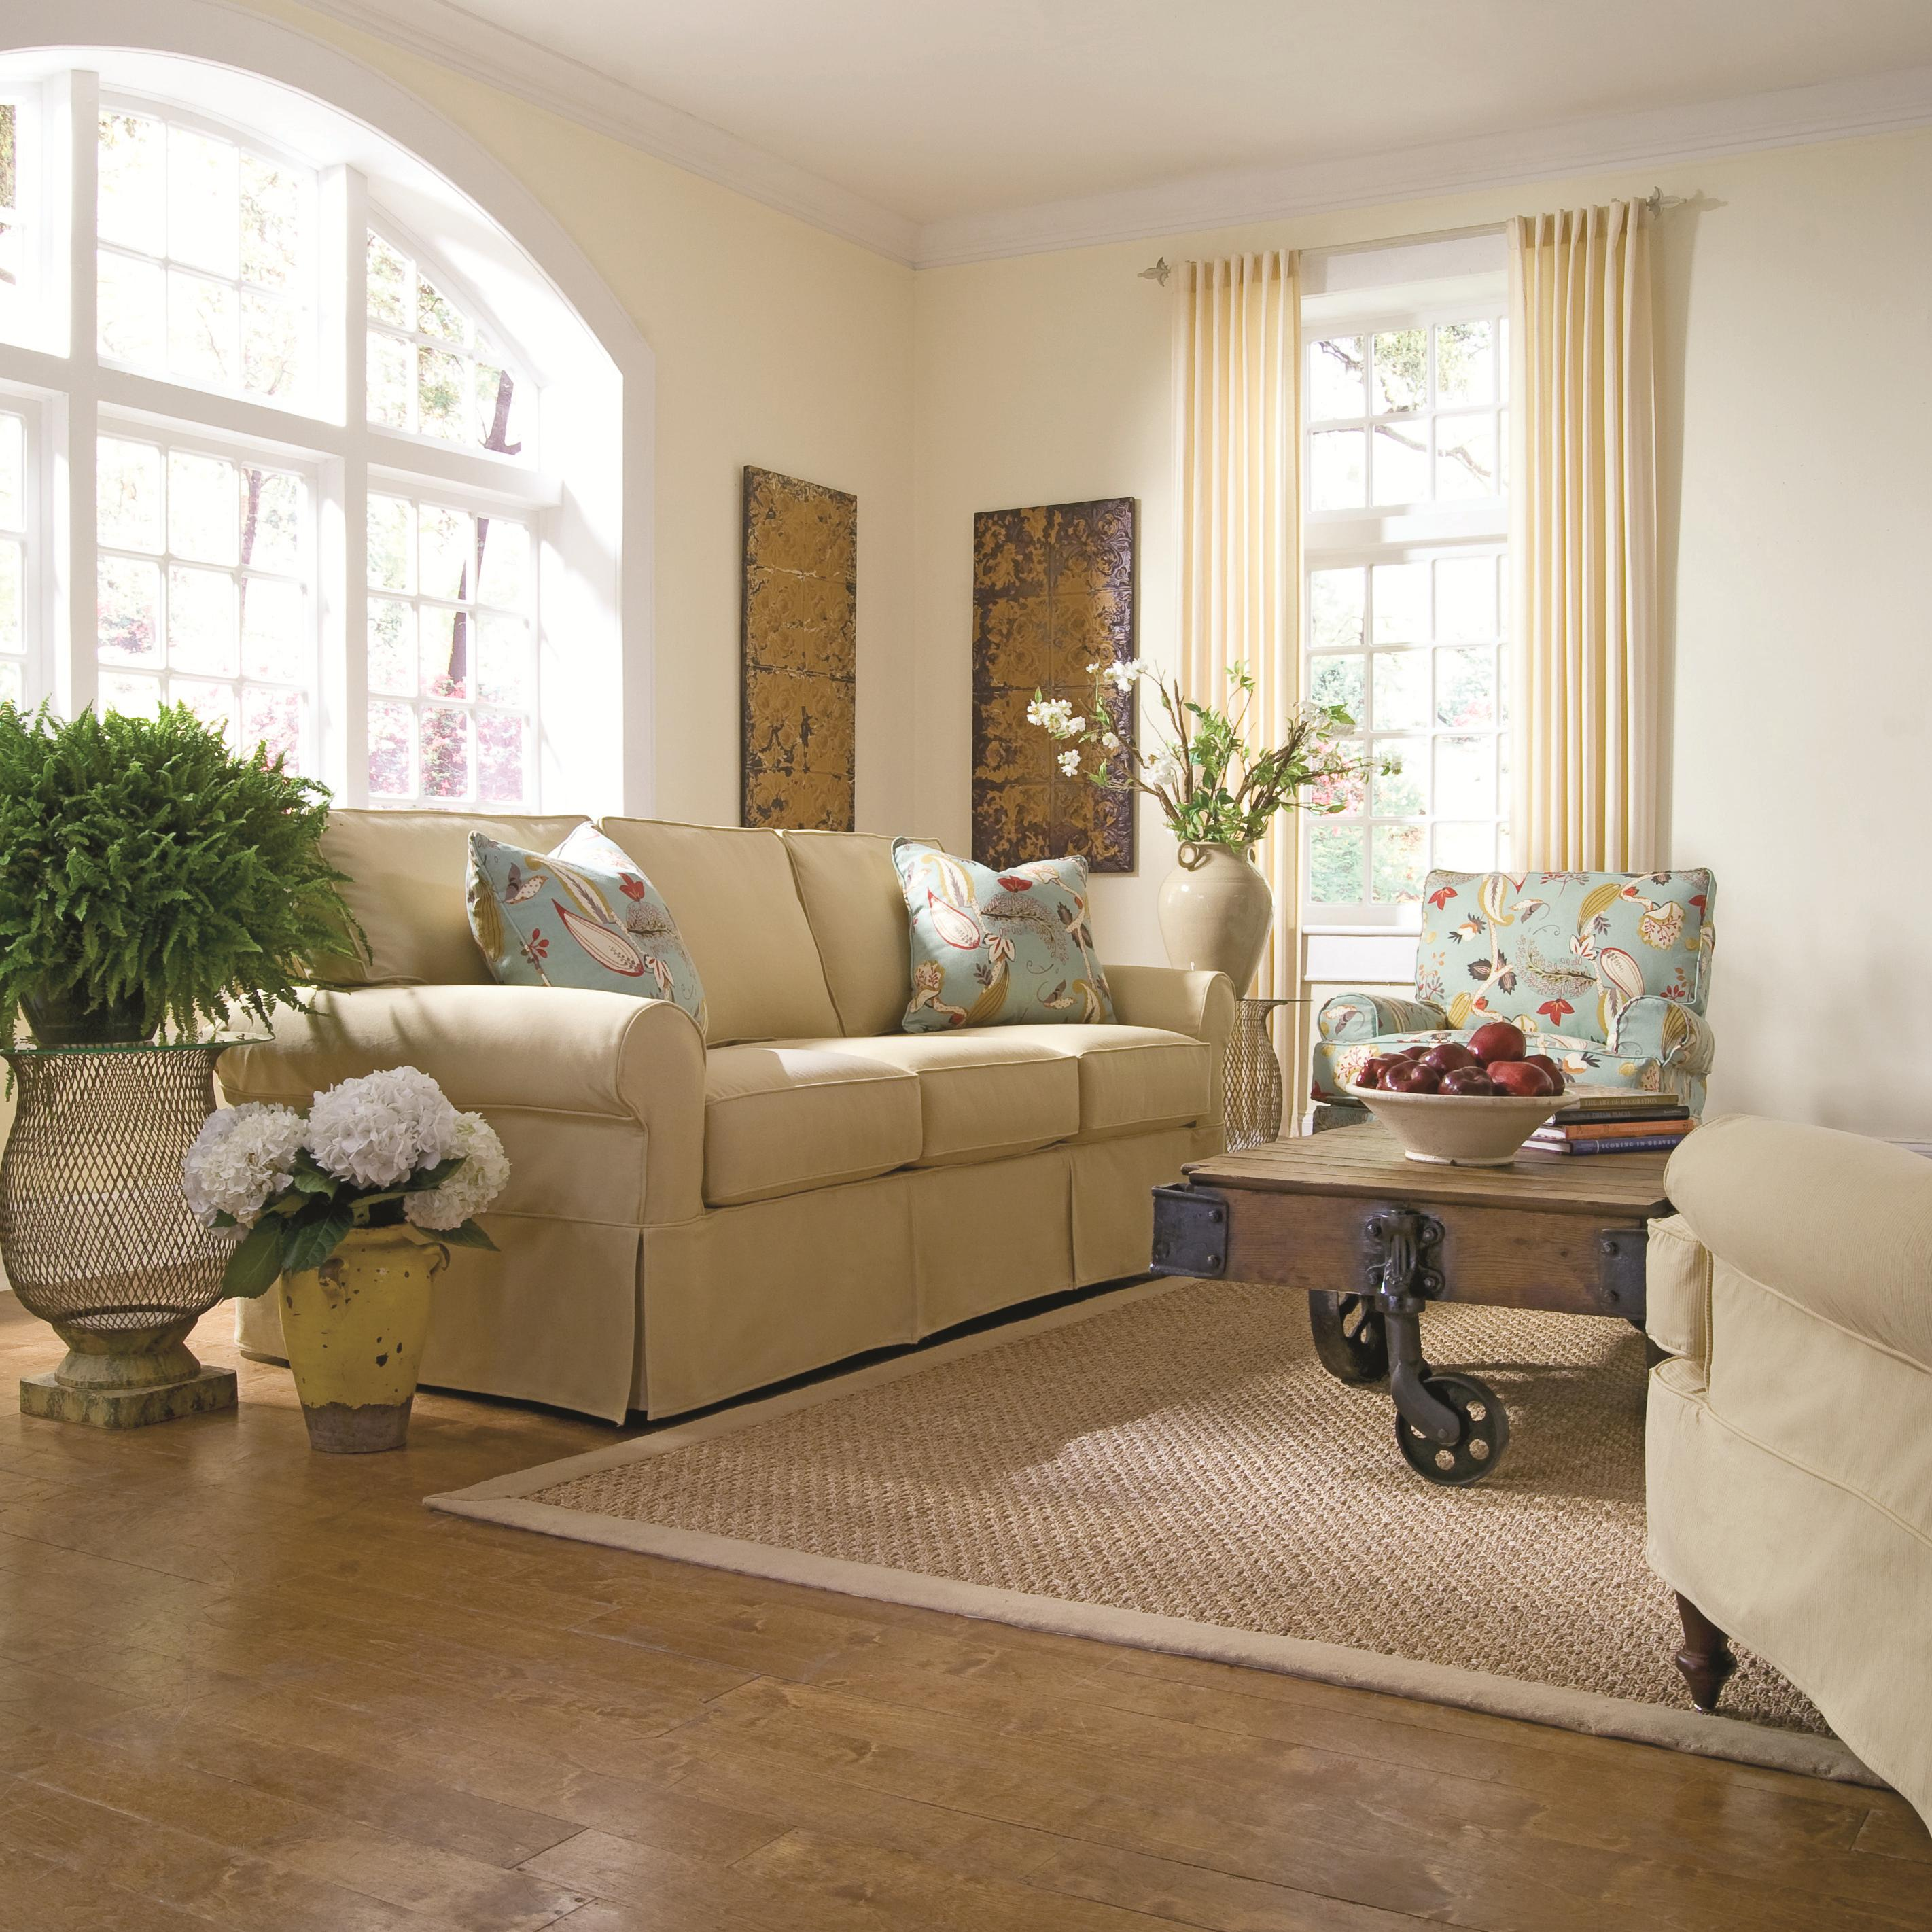 Arm Chair Slip Covers | Rowe Furniture Slipcovers | Rowe Furniture Sofa